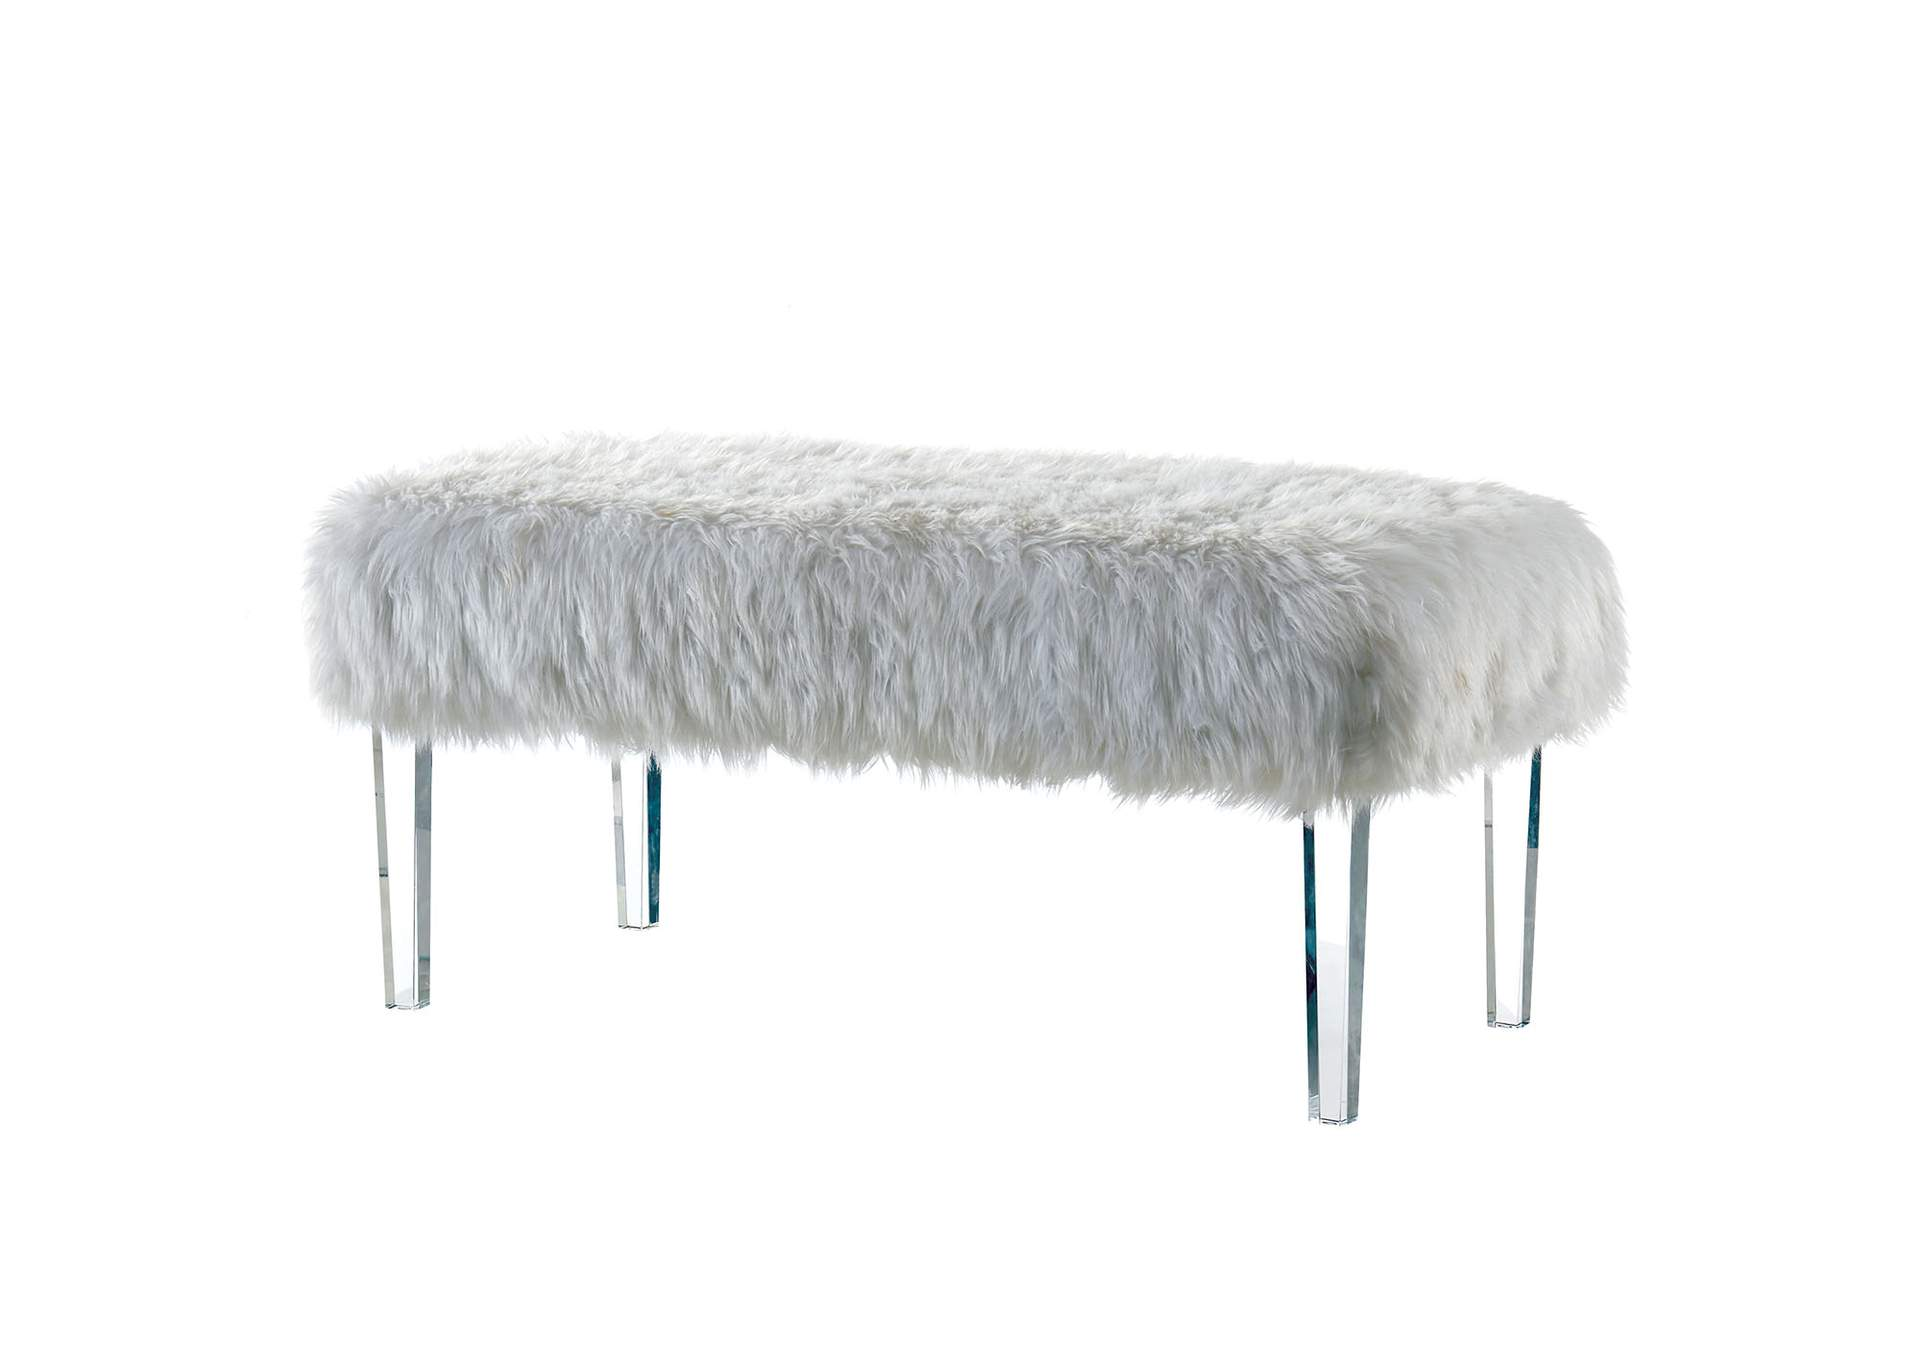 Pleasing 944292 Zyana White Faux Fur Bench W Acrylic Legs Squirreltailoven Fun Painted Chair Ideas Images Squirreltailovenorg